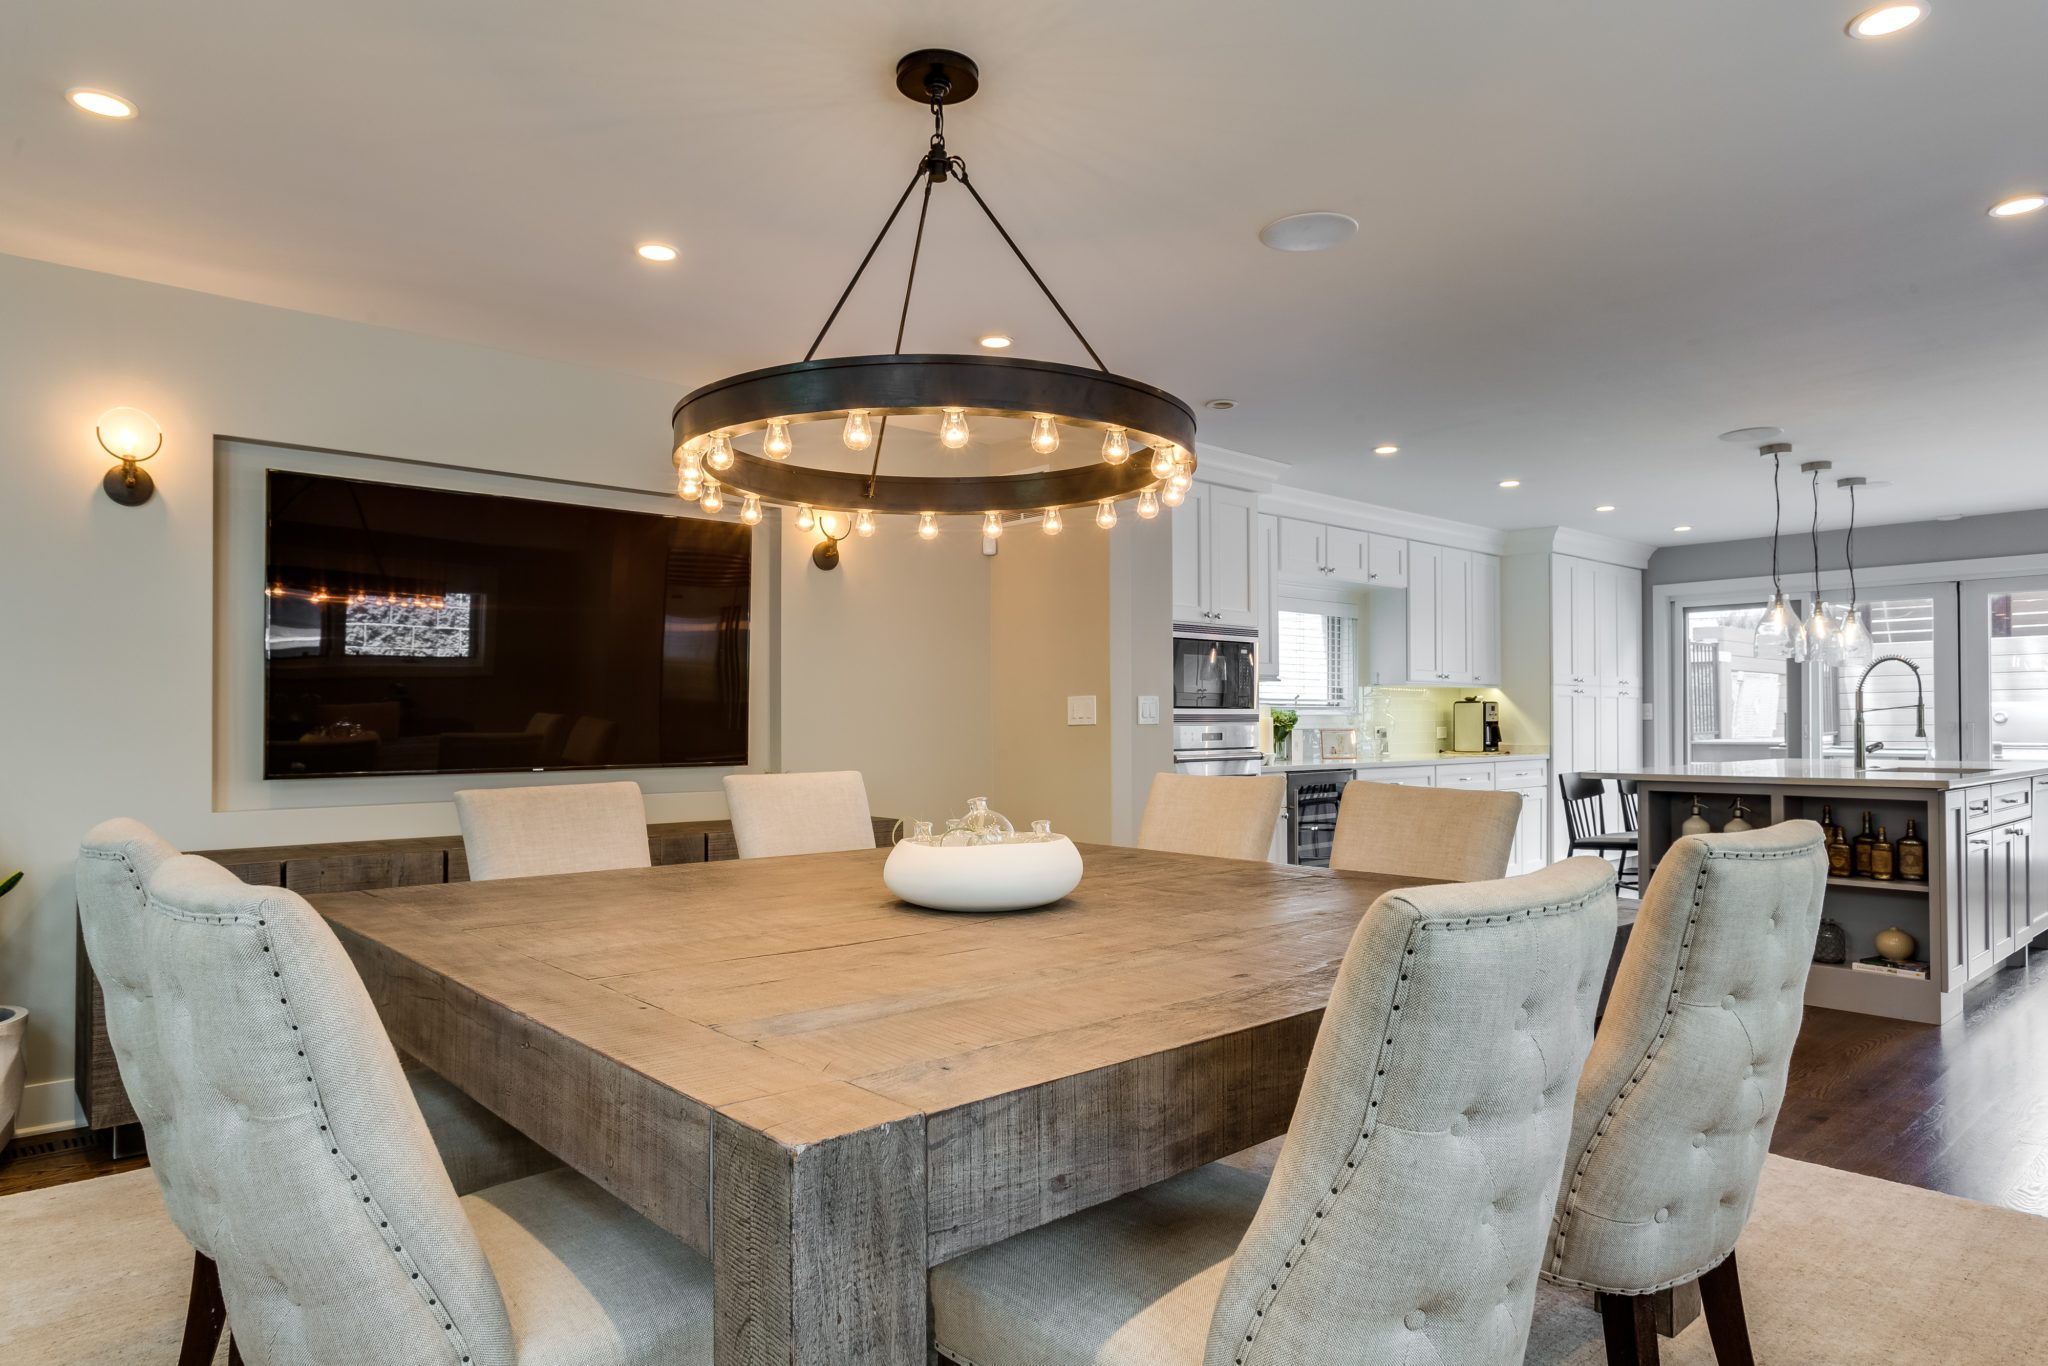 Transitional Eating Area, Dining Room with raw wood table and tufted chairs by Rae Duncan Interior Design